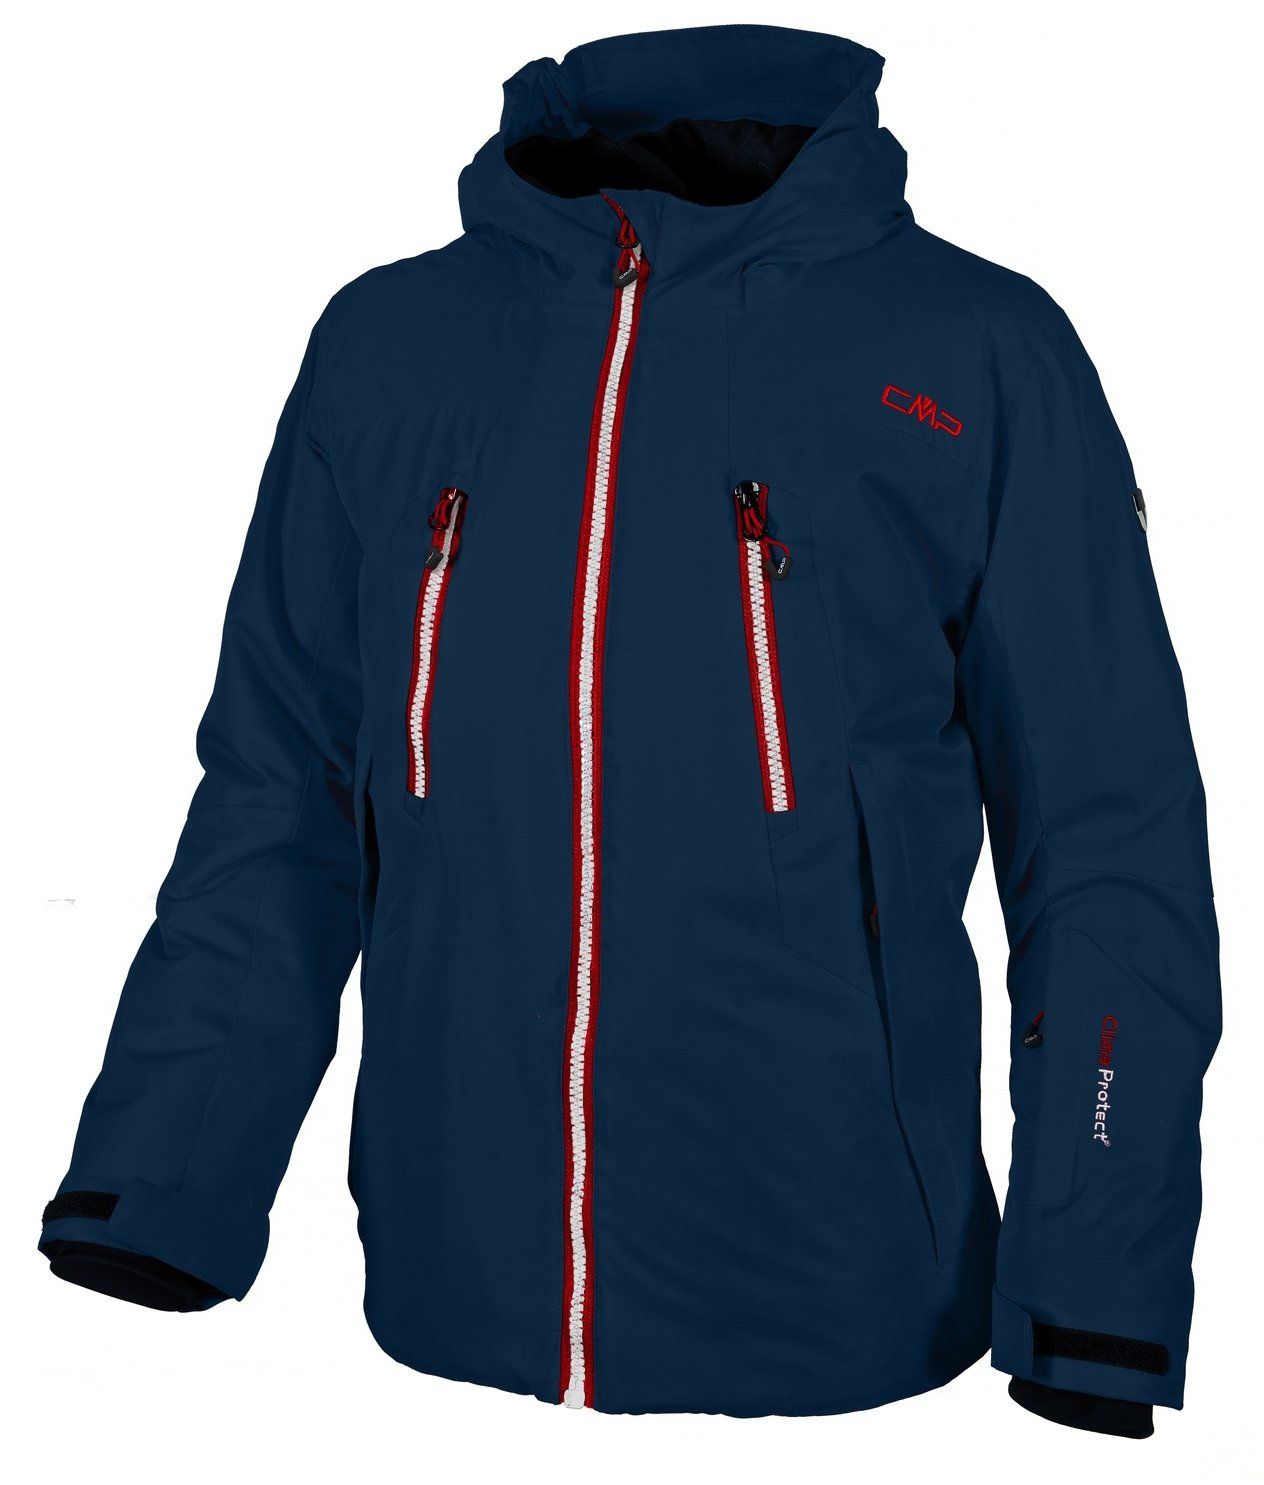 Campagnolo BOY JACKET FIX HOOD kaufen